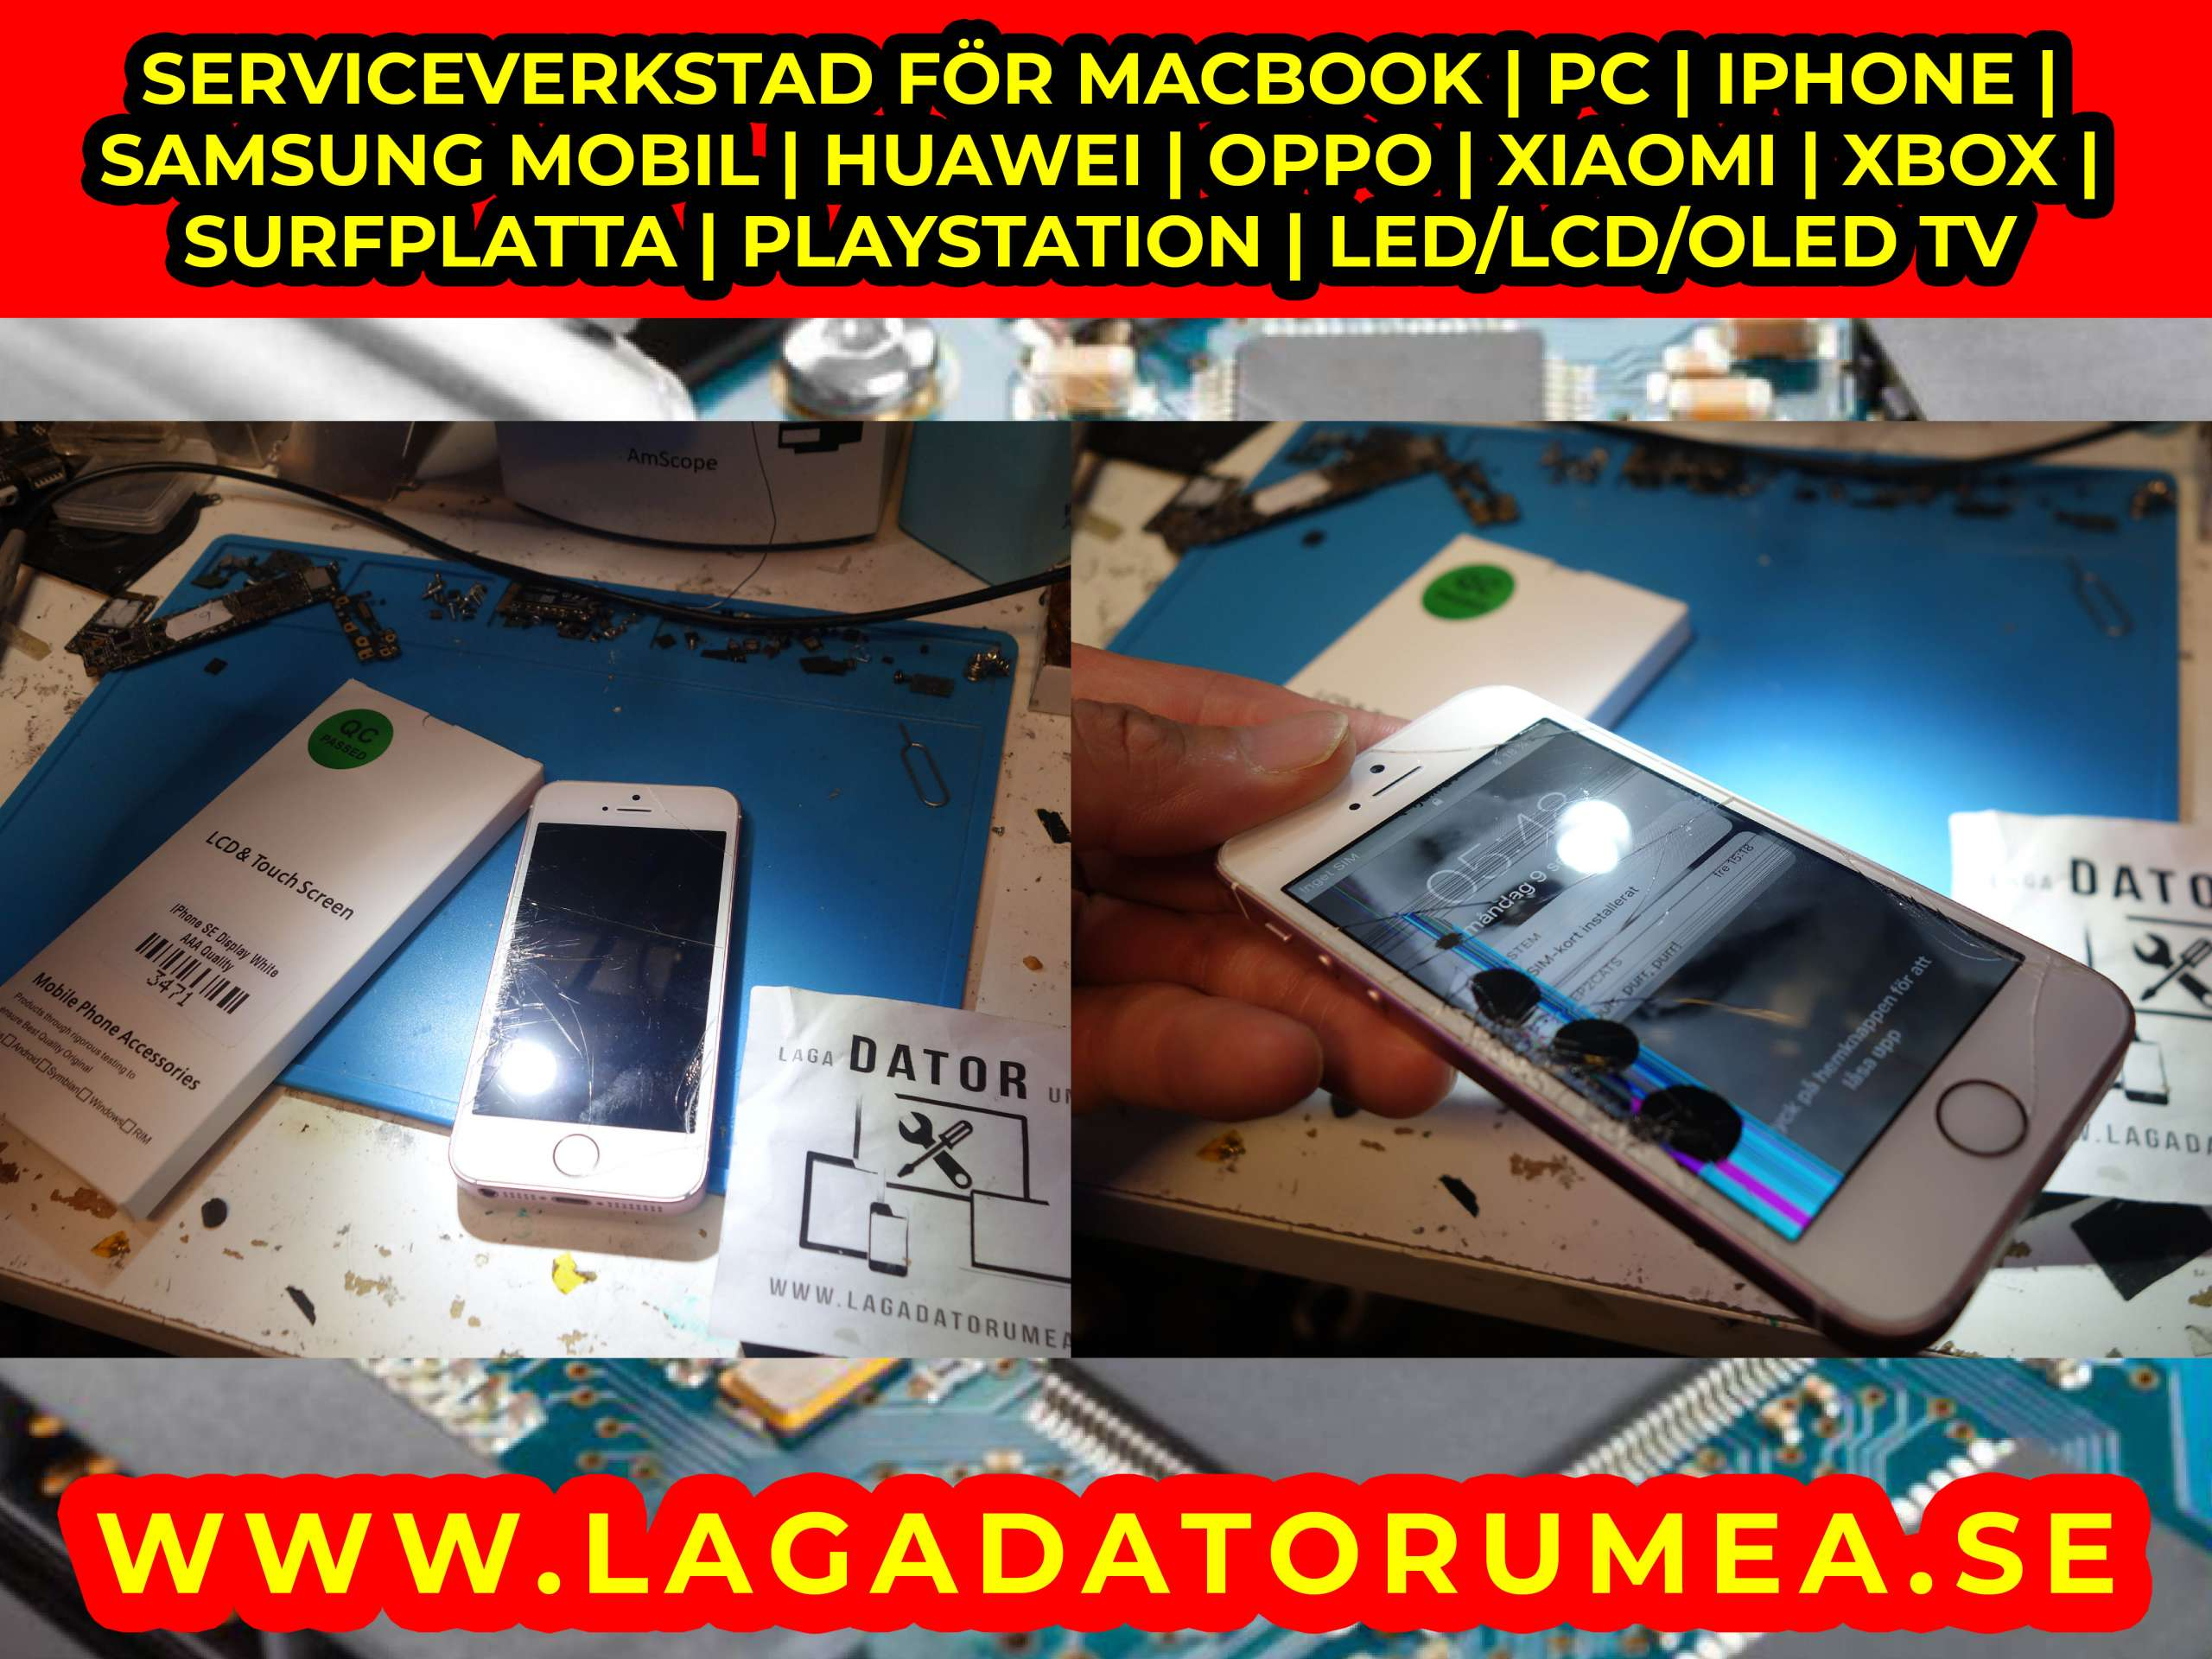 iphone reparation och datorreparation